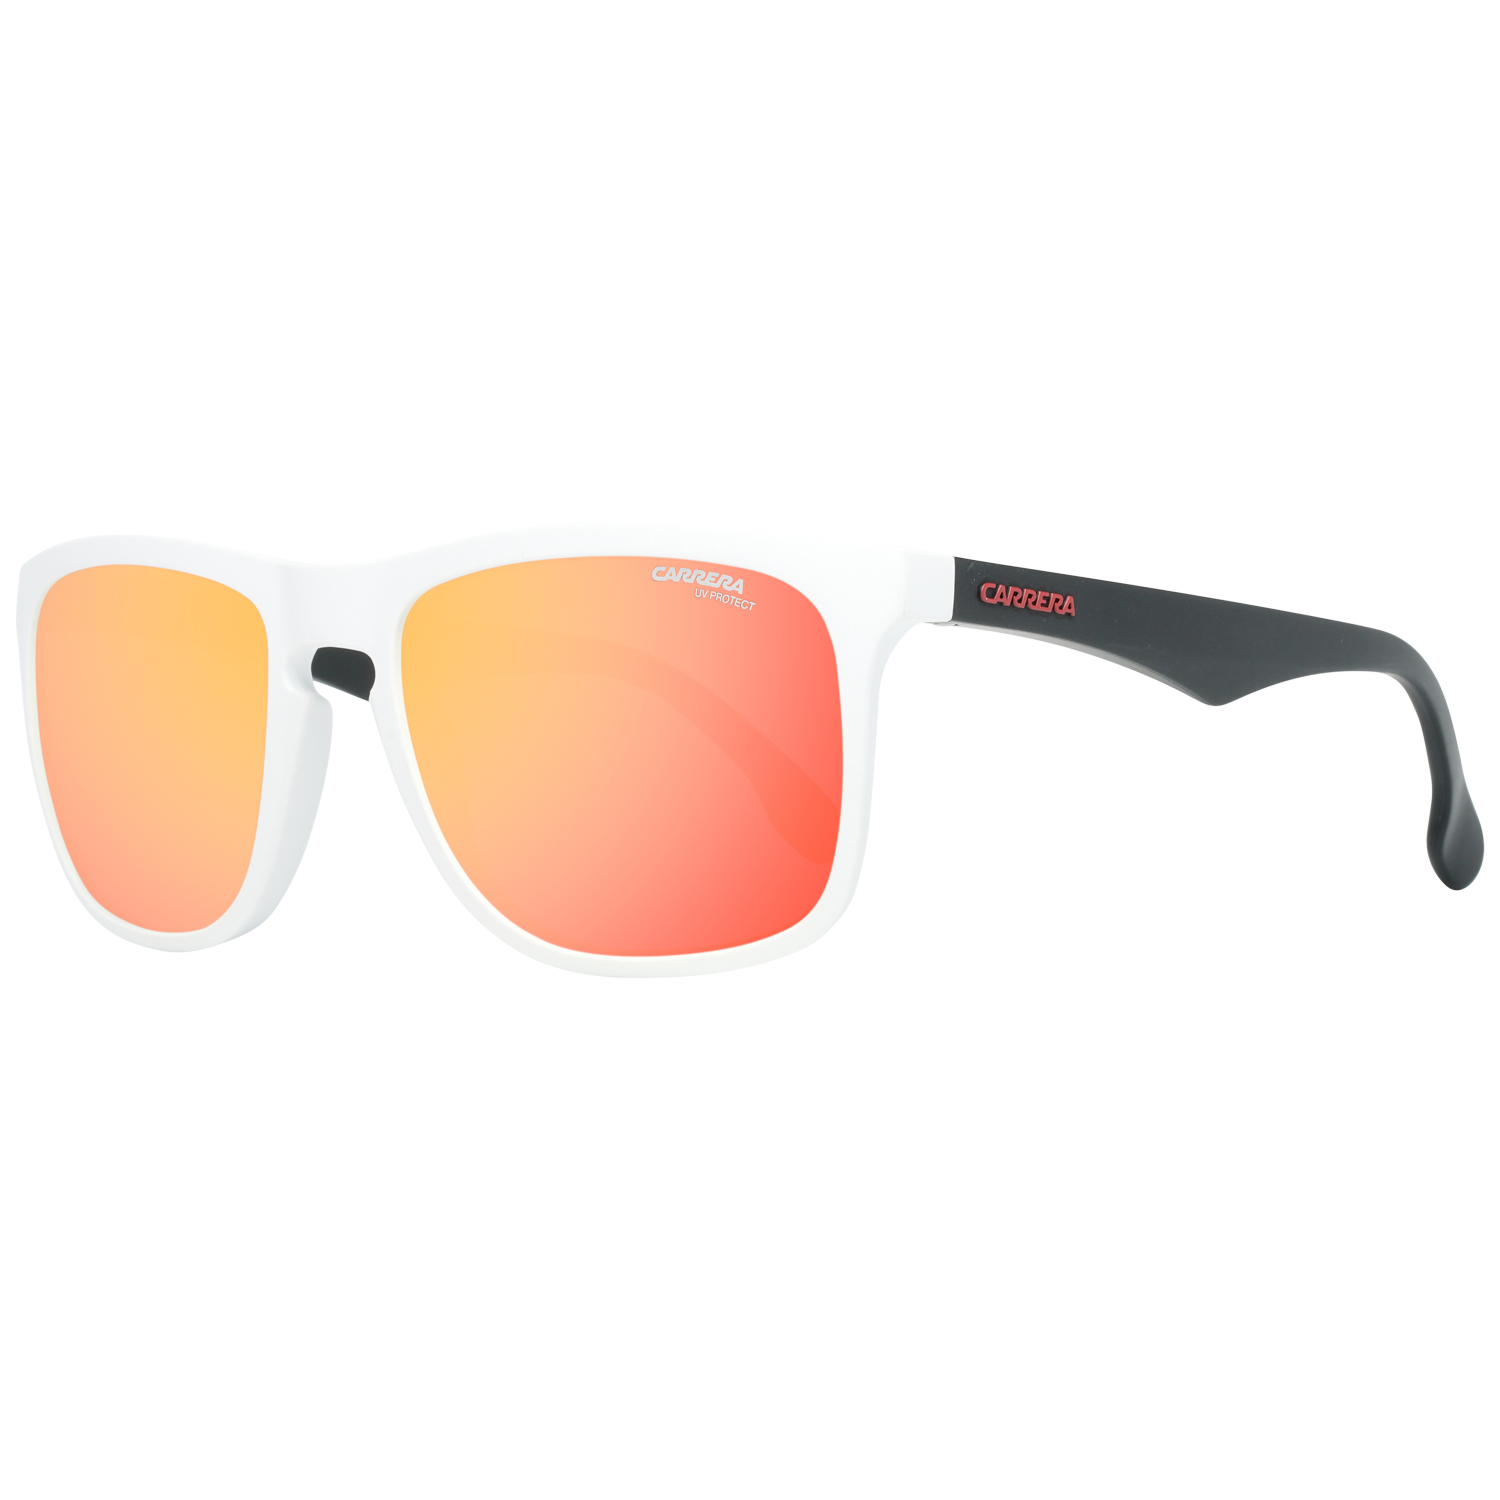 Carrera Sunglasses CA5043/S 6HT/UZ 56 White